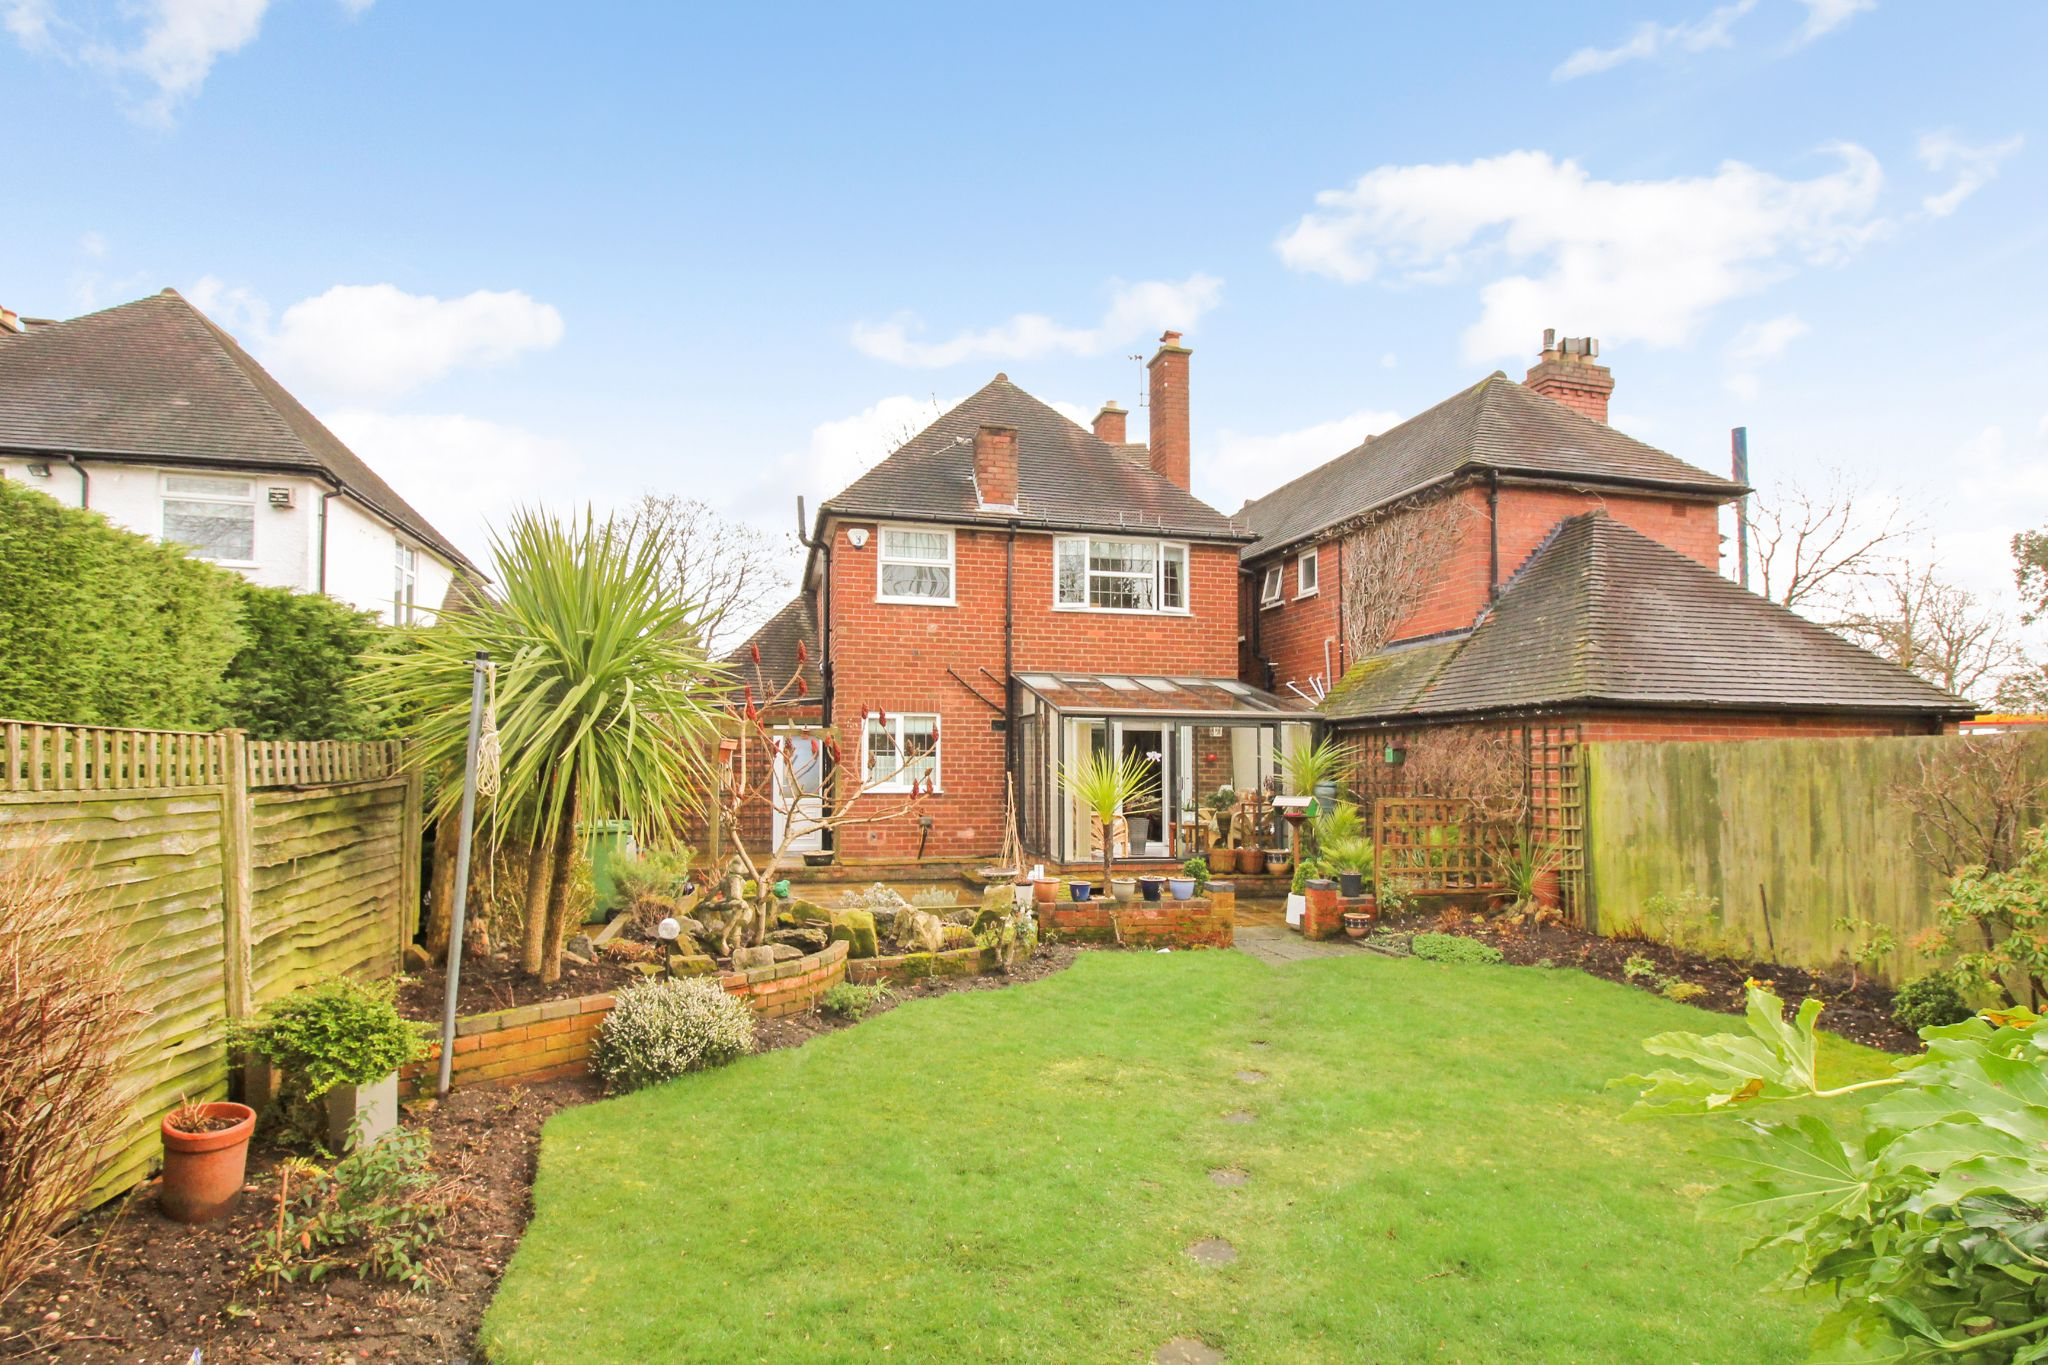 3 bedroom detached house SSTC in Solihull - Photograph 12.